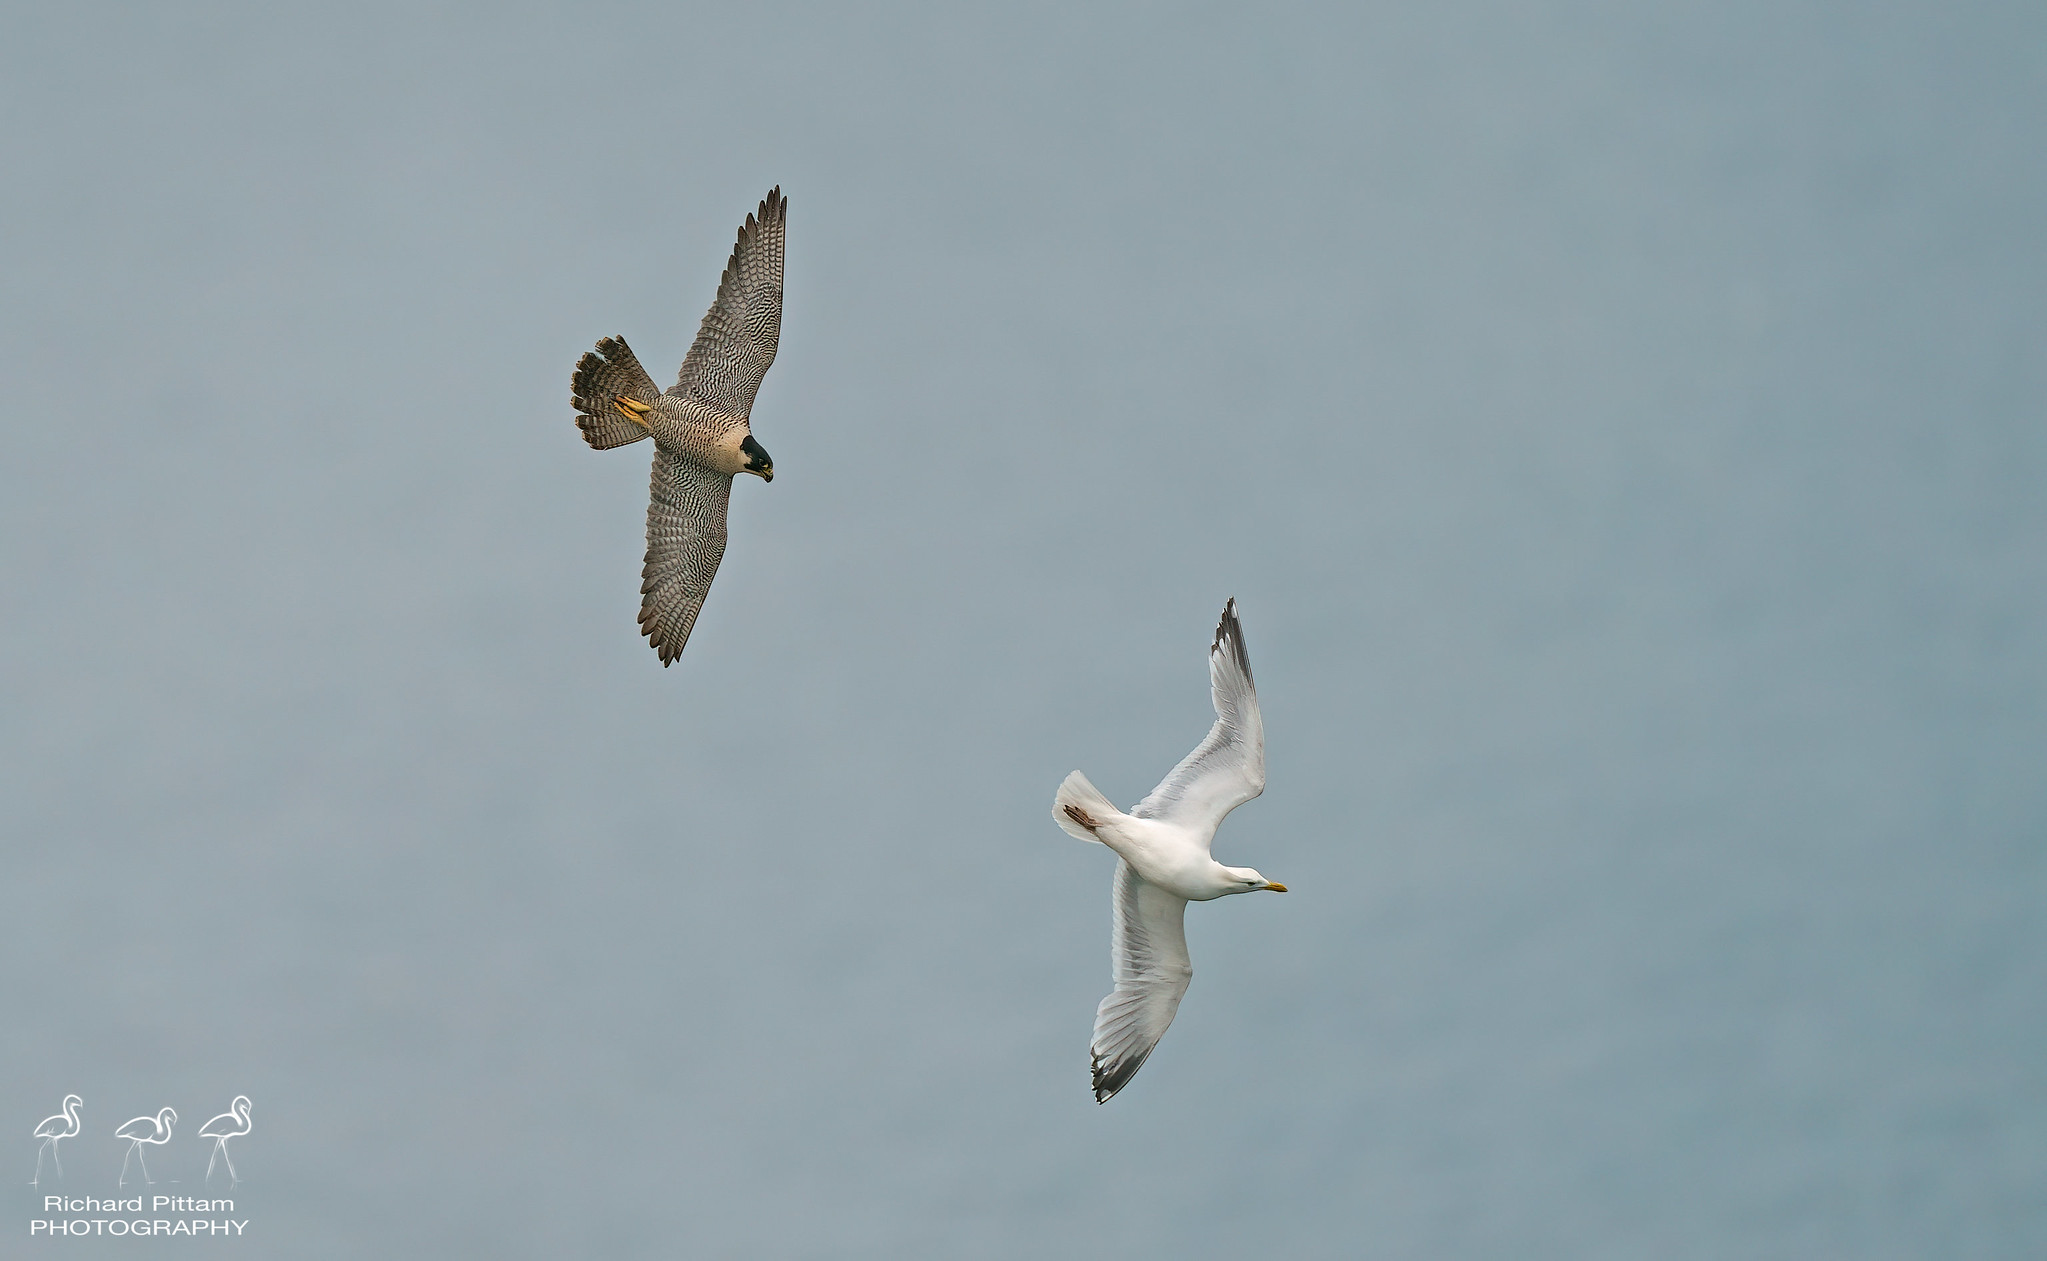 Peregrine and Herring Gull in aerial tussle on cliffs